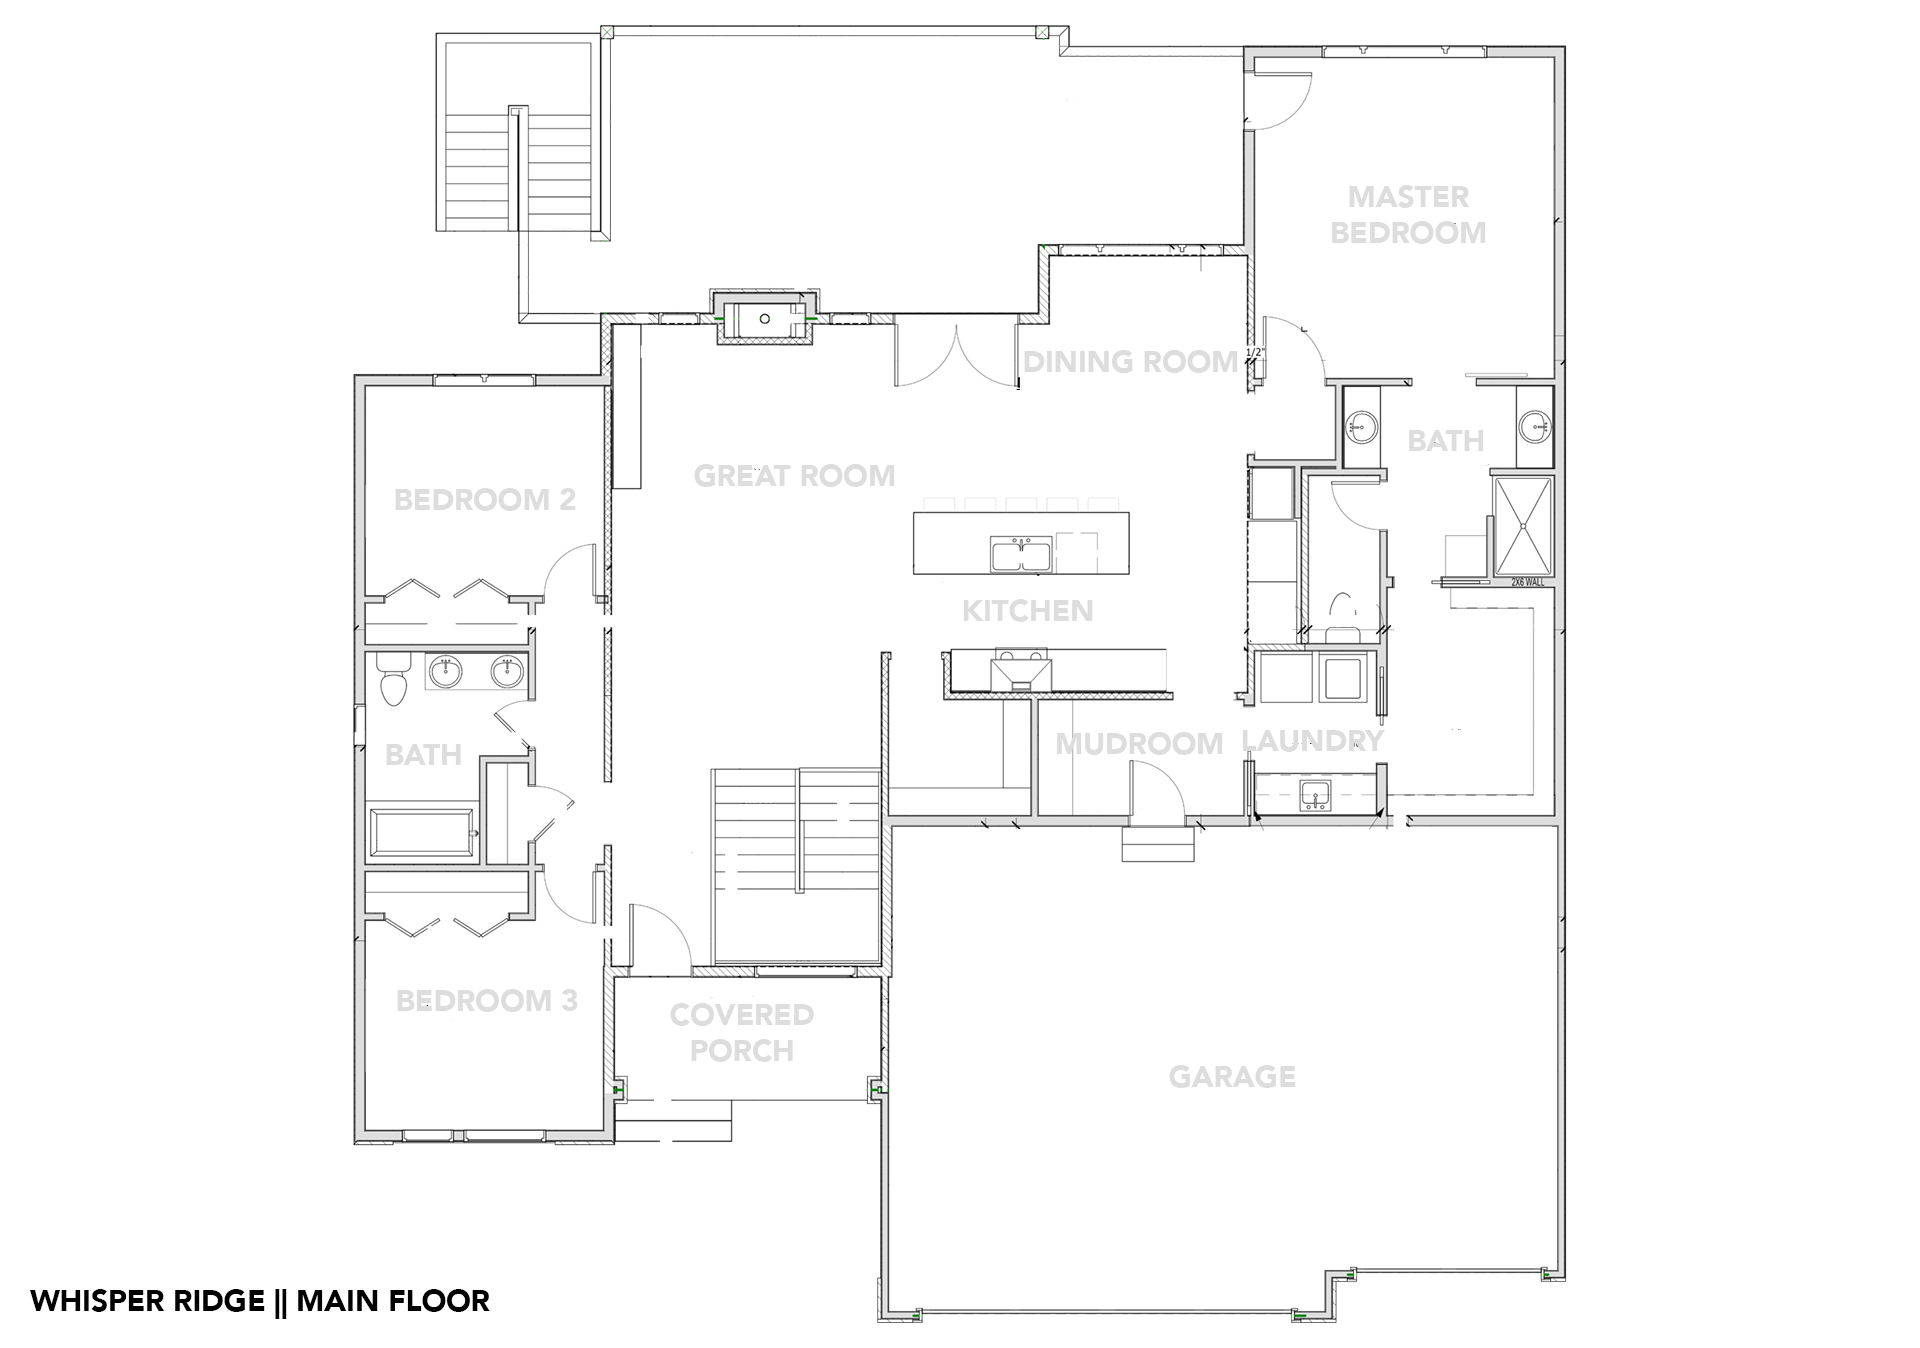 C:\Users\kevinr.GILCREST-JEWETT\Documents\Greth Residence - 4TH